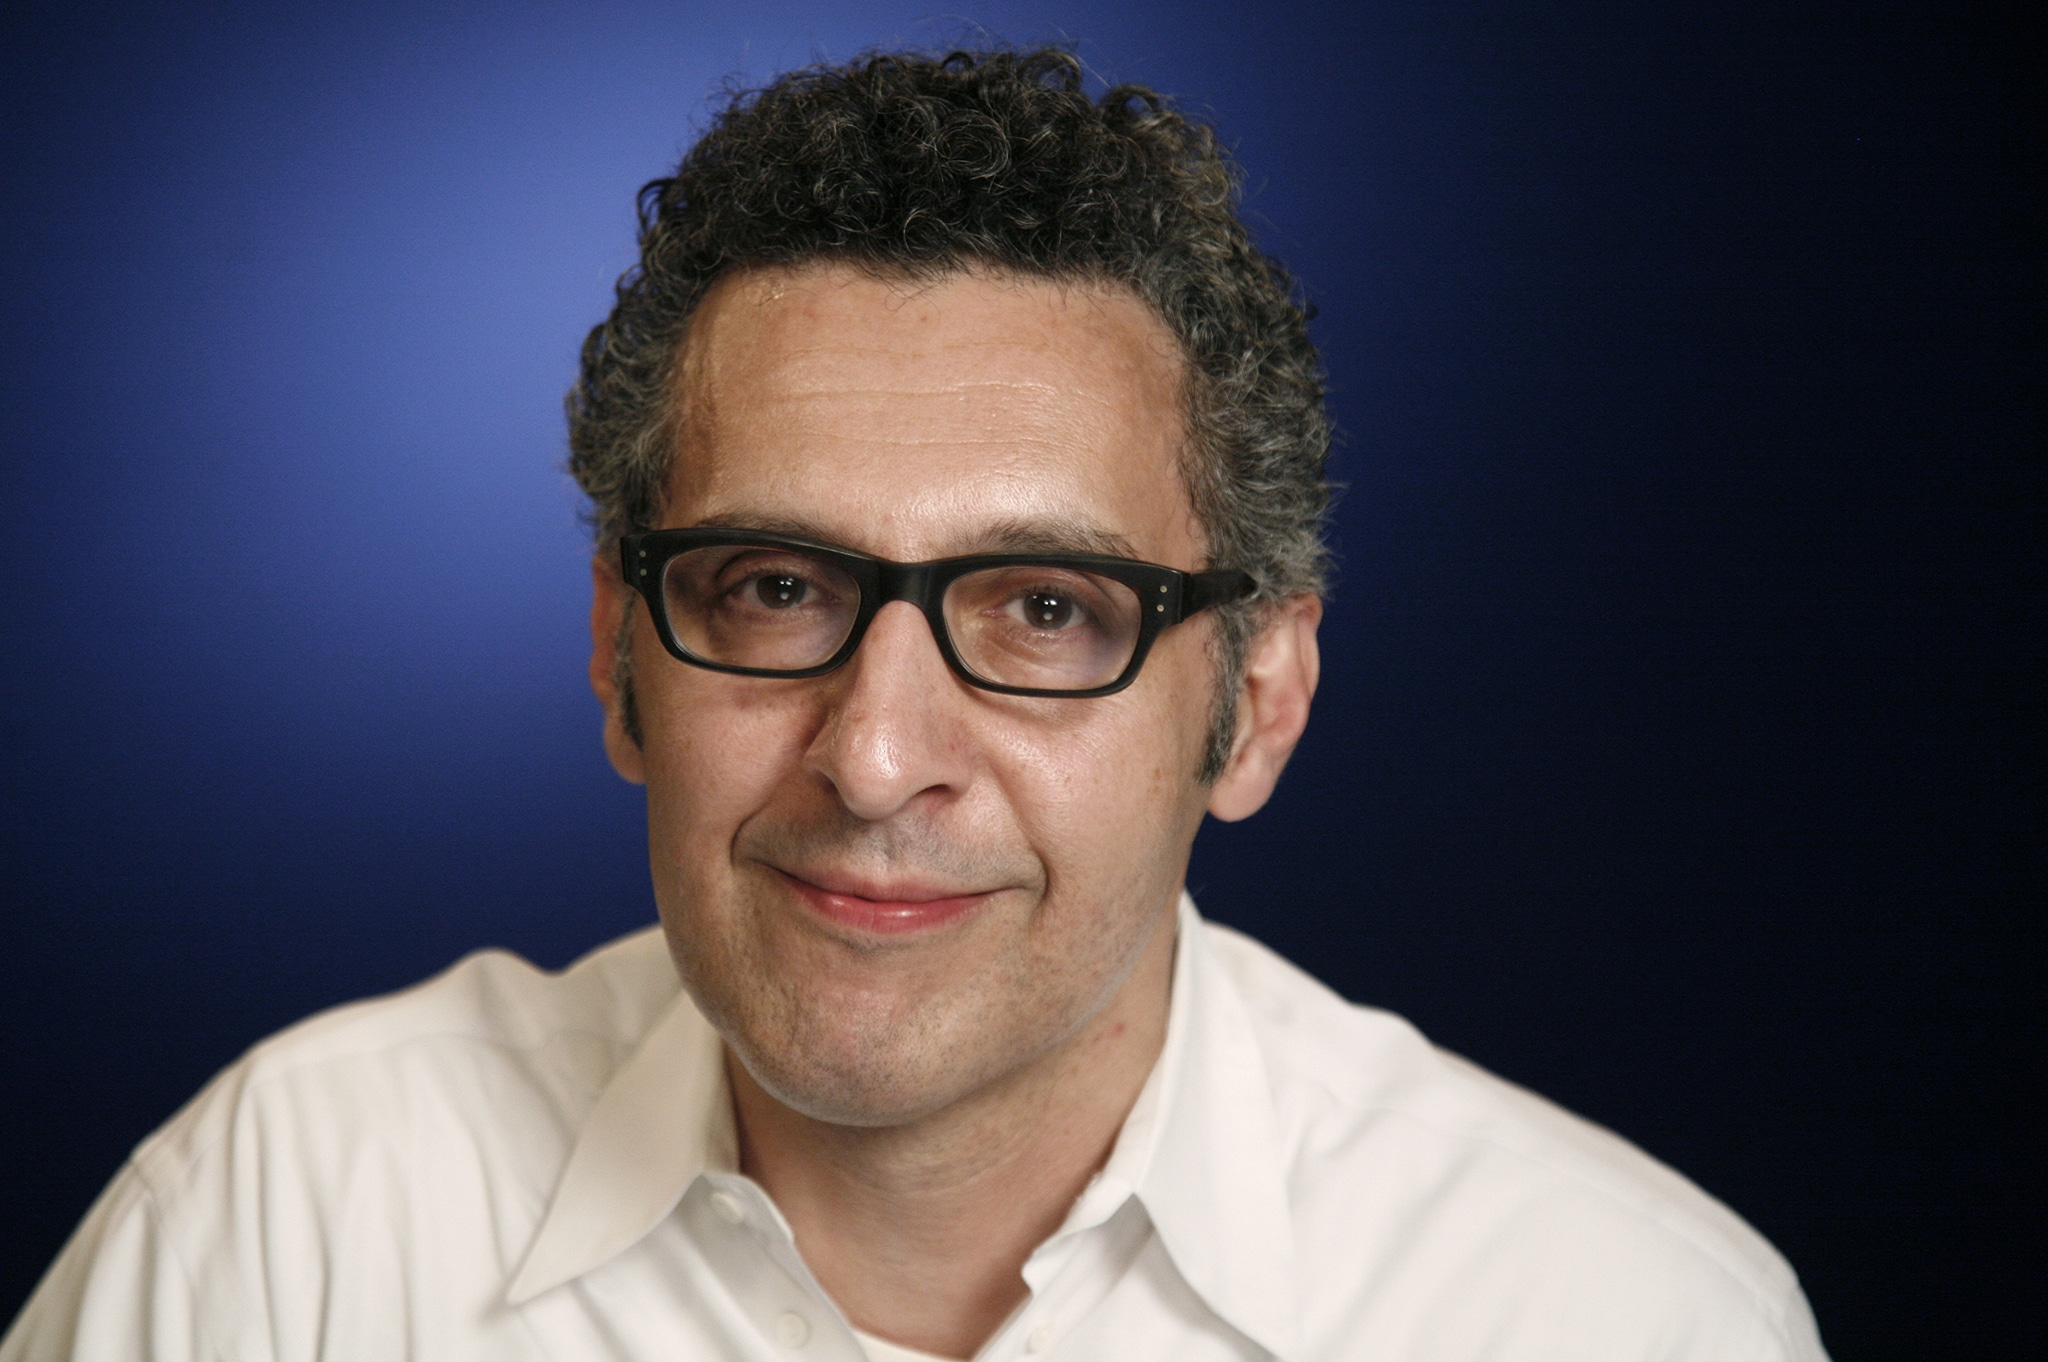 John Turturro John Turturro Net Worth